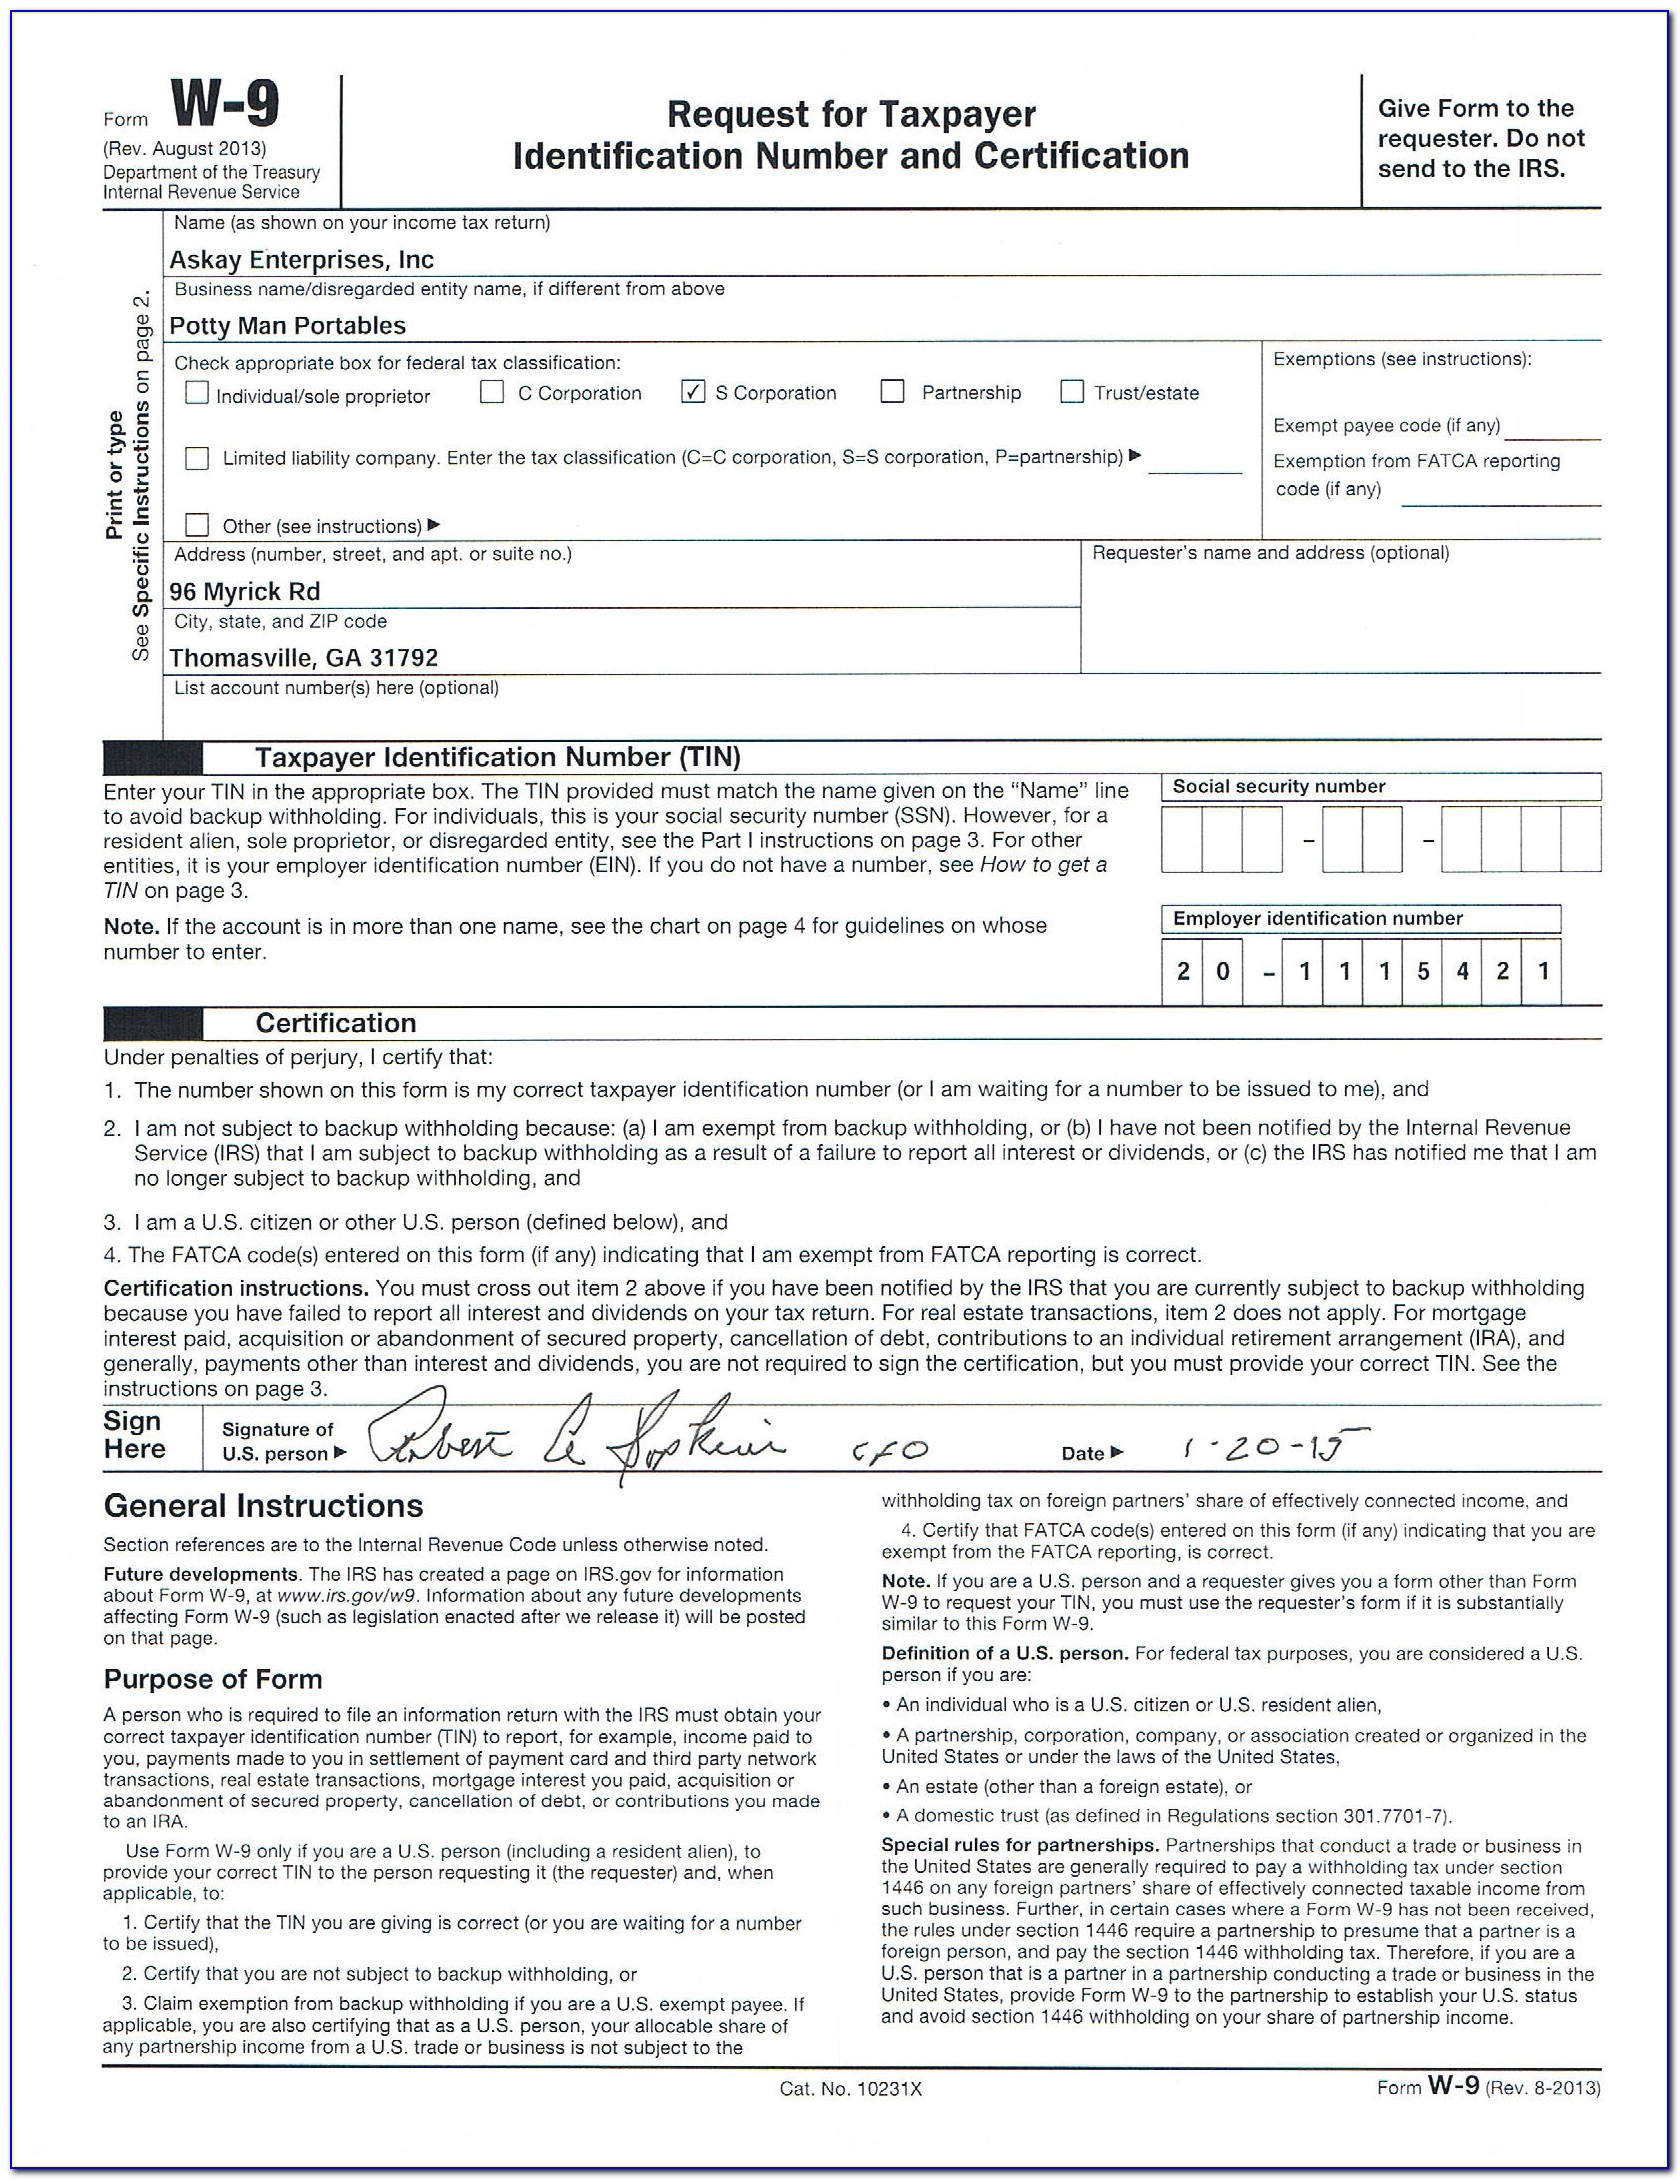 W9 Free Printable Form 2016 | Vincegray2014 throughout Free Printable W 9 Form